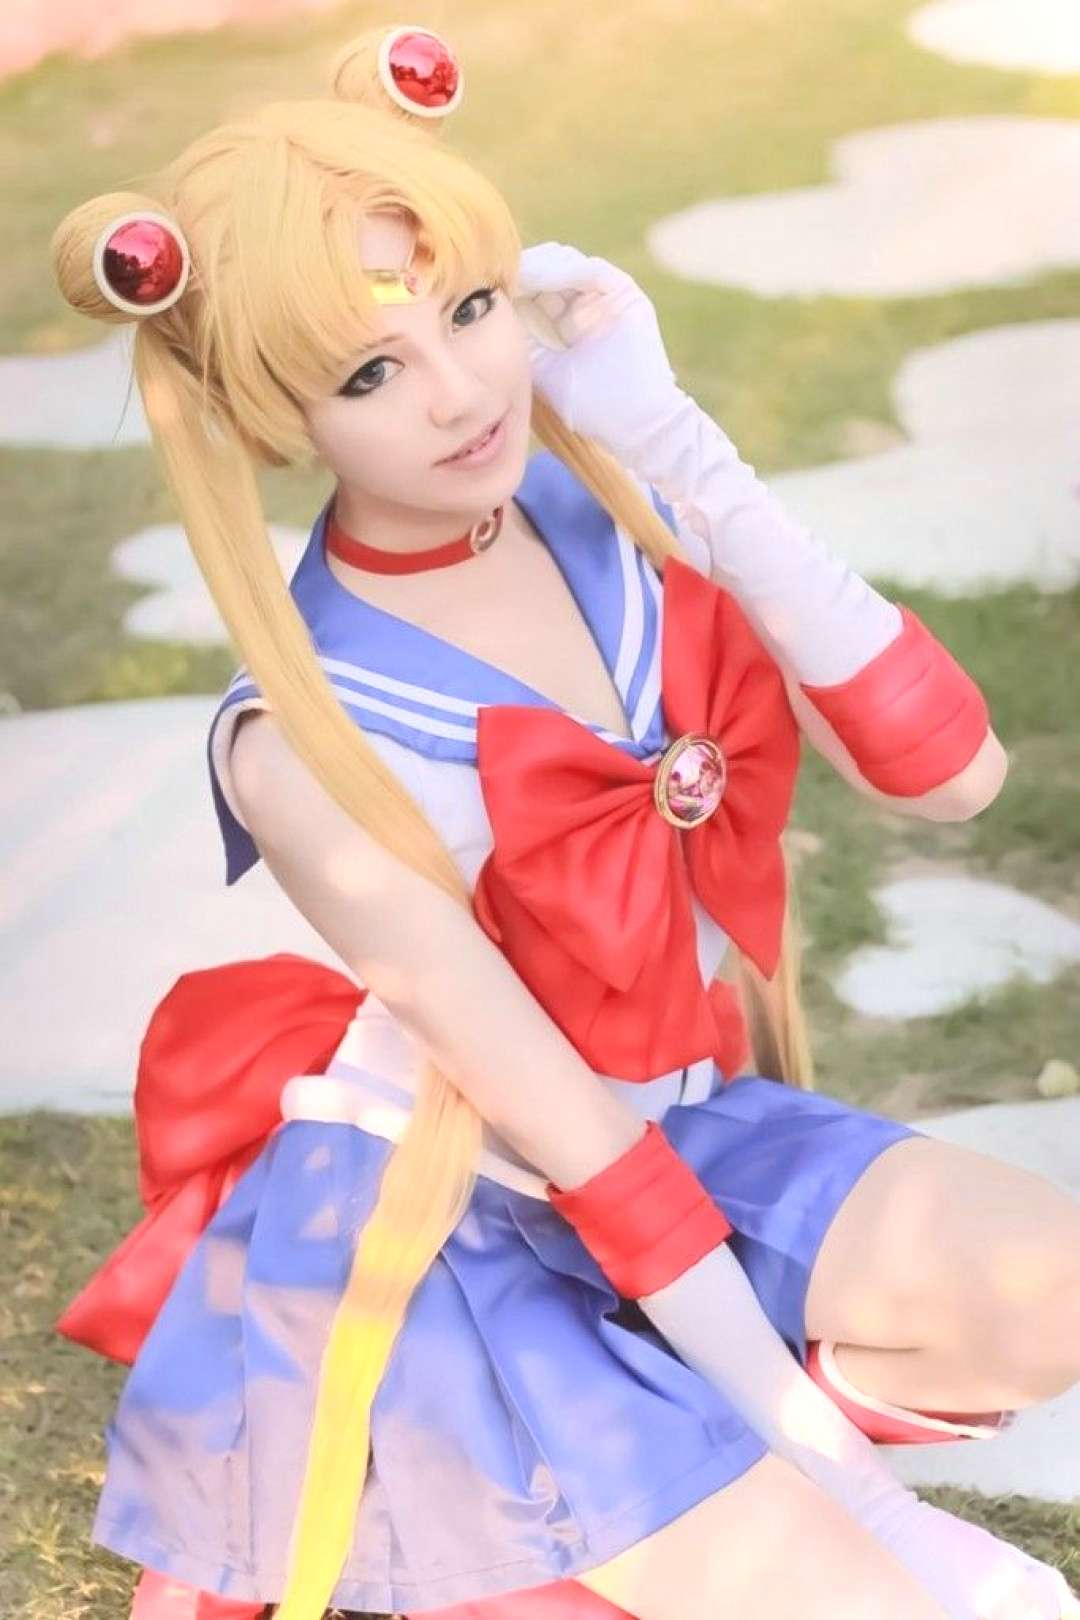 Two Costumes for Sailor Moon Cosplay, Which One Do You Like? - Rolecosplay -  Sailor Moon Cosplay 6